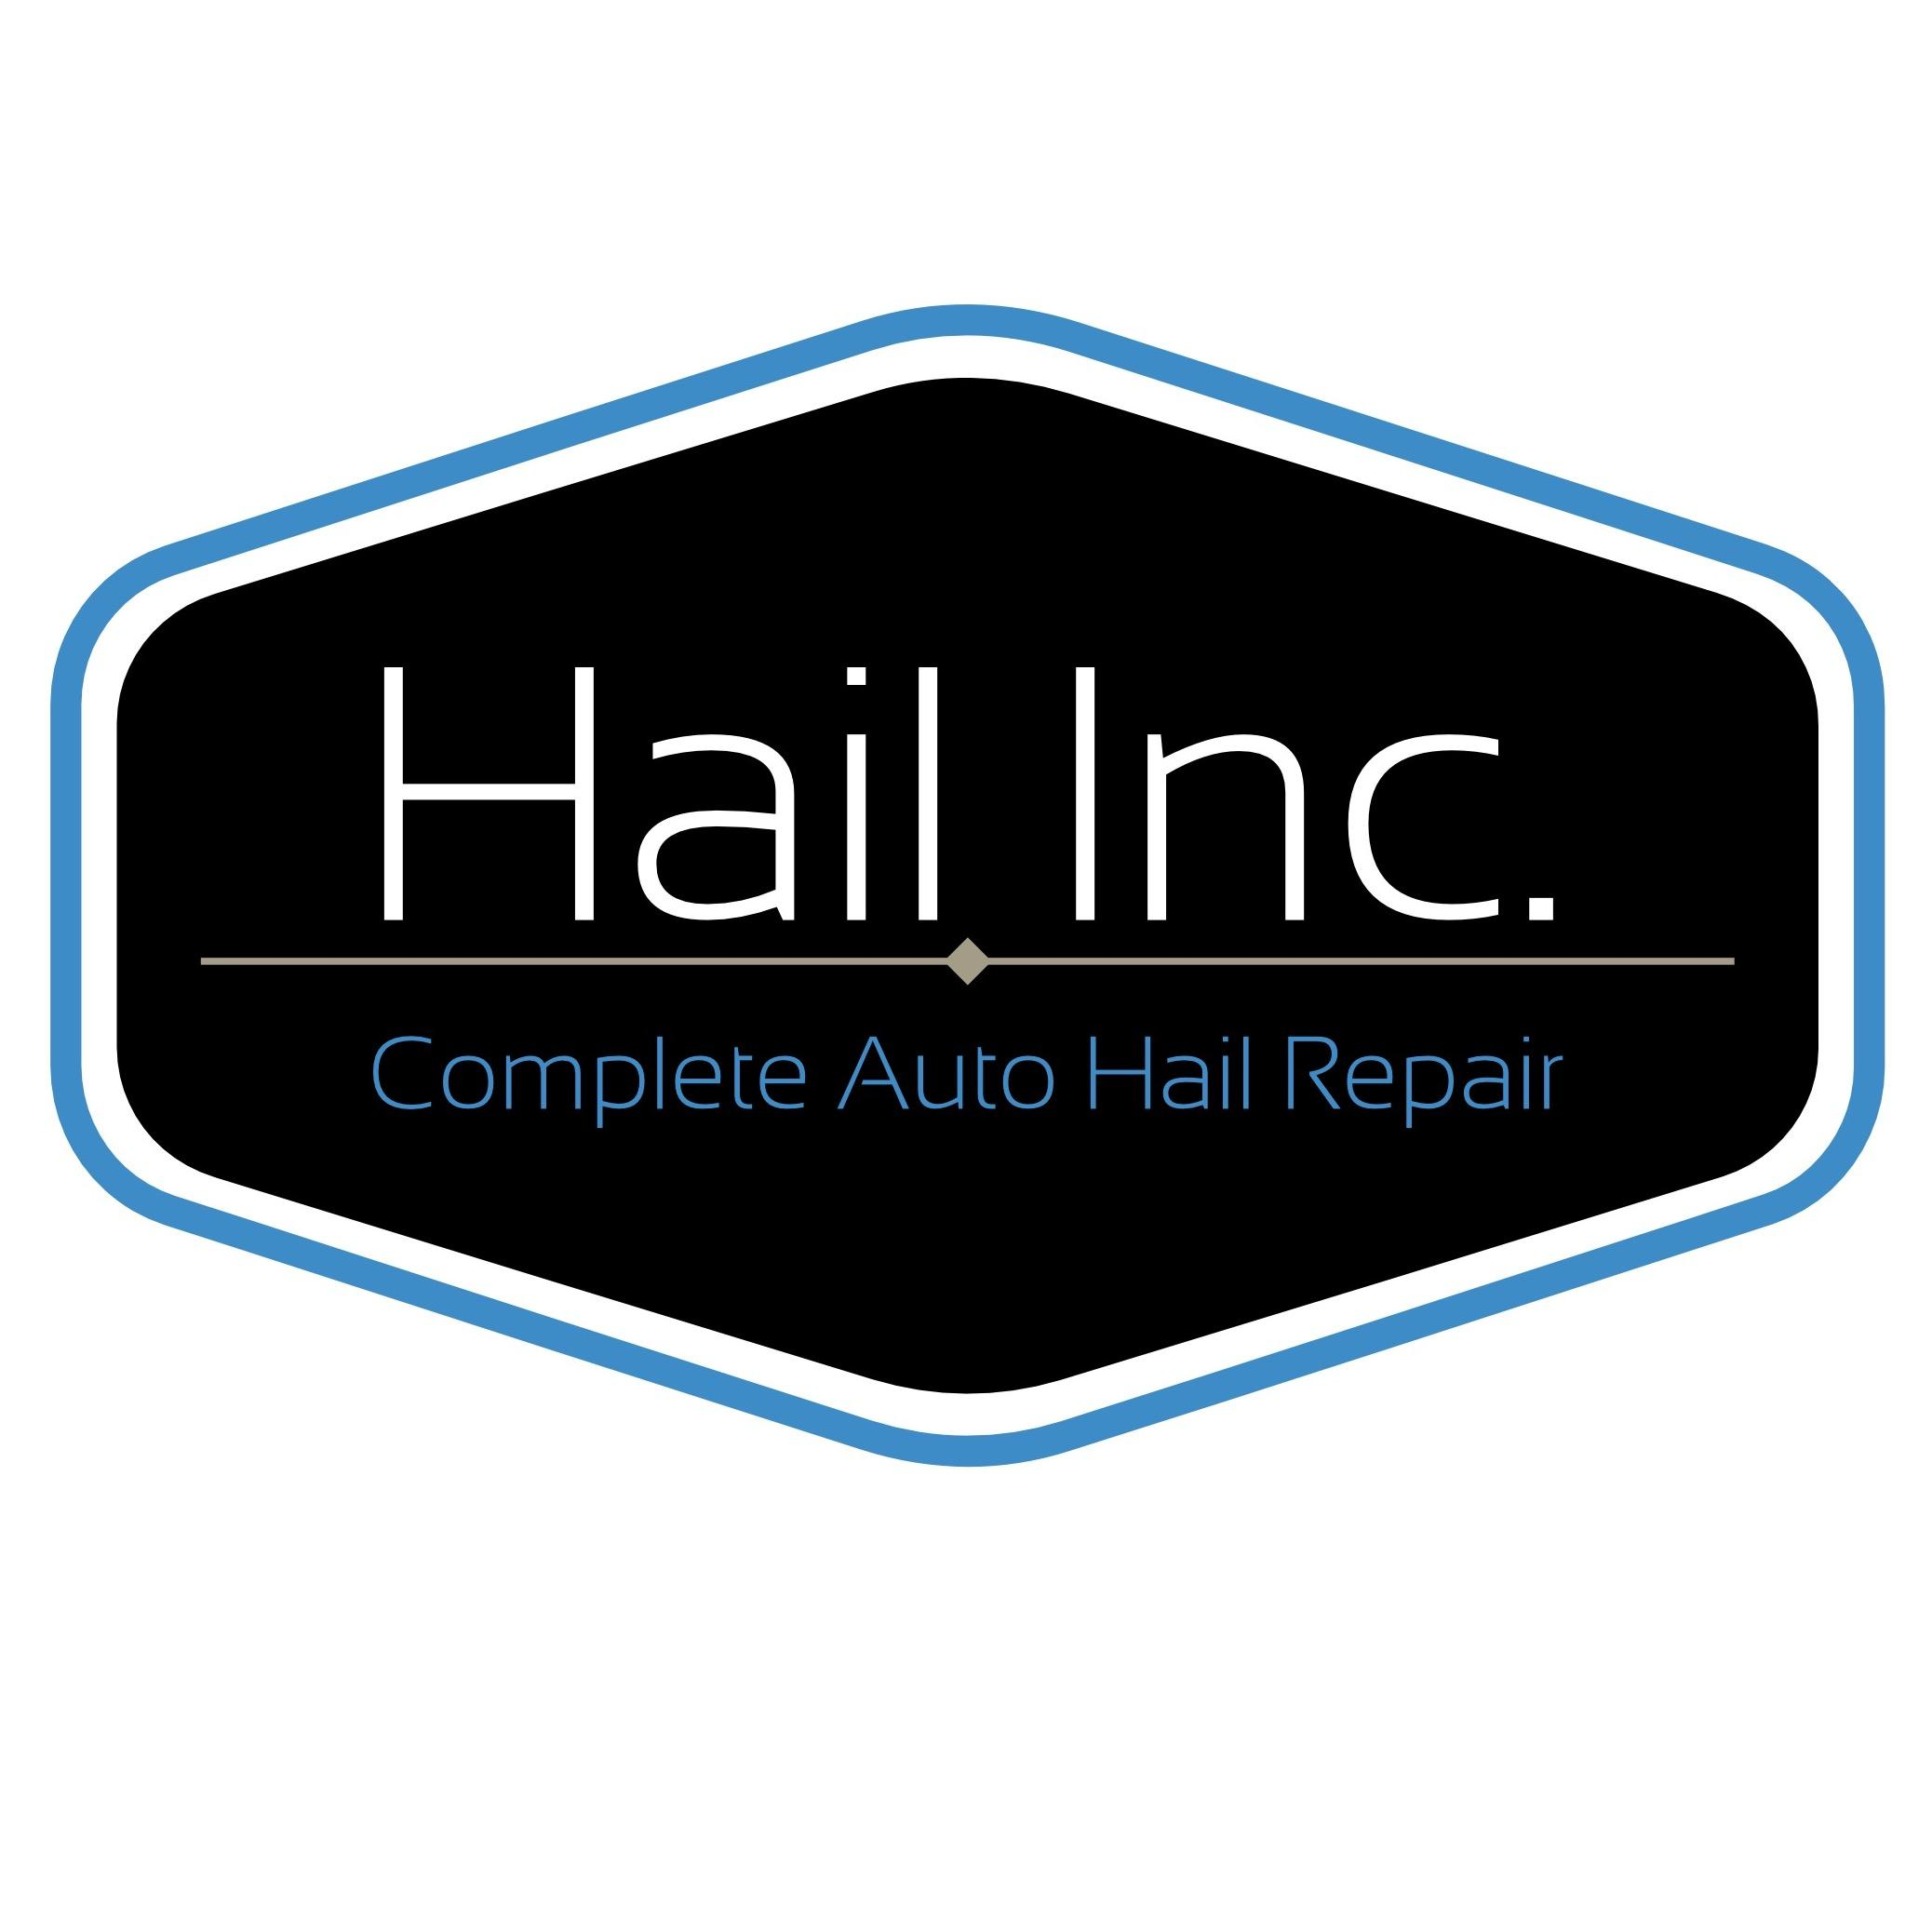 Hail inc. Auto Hail Repair